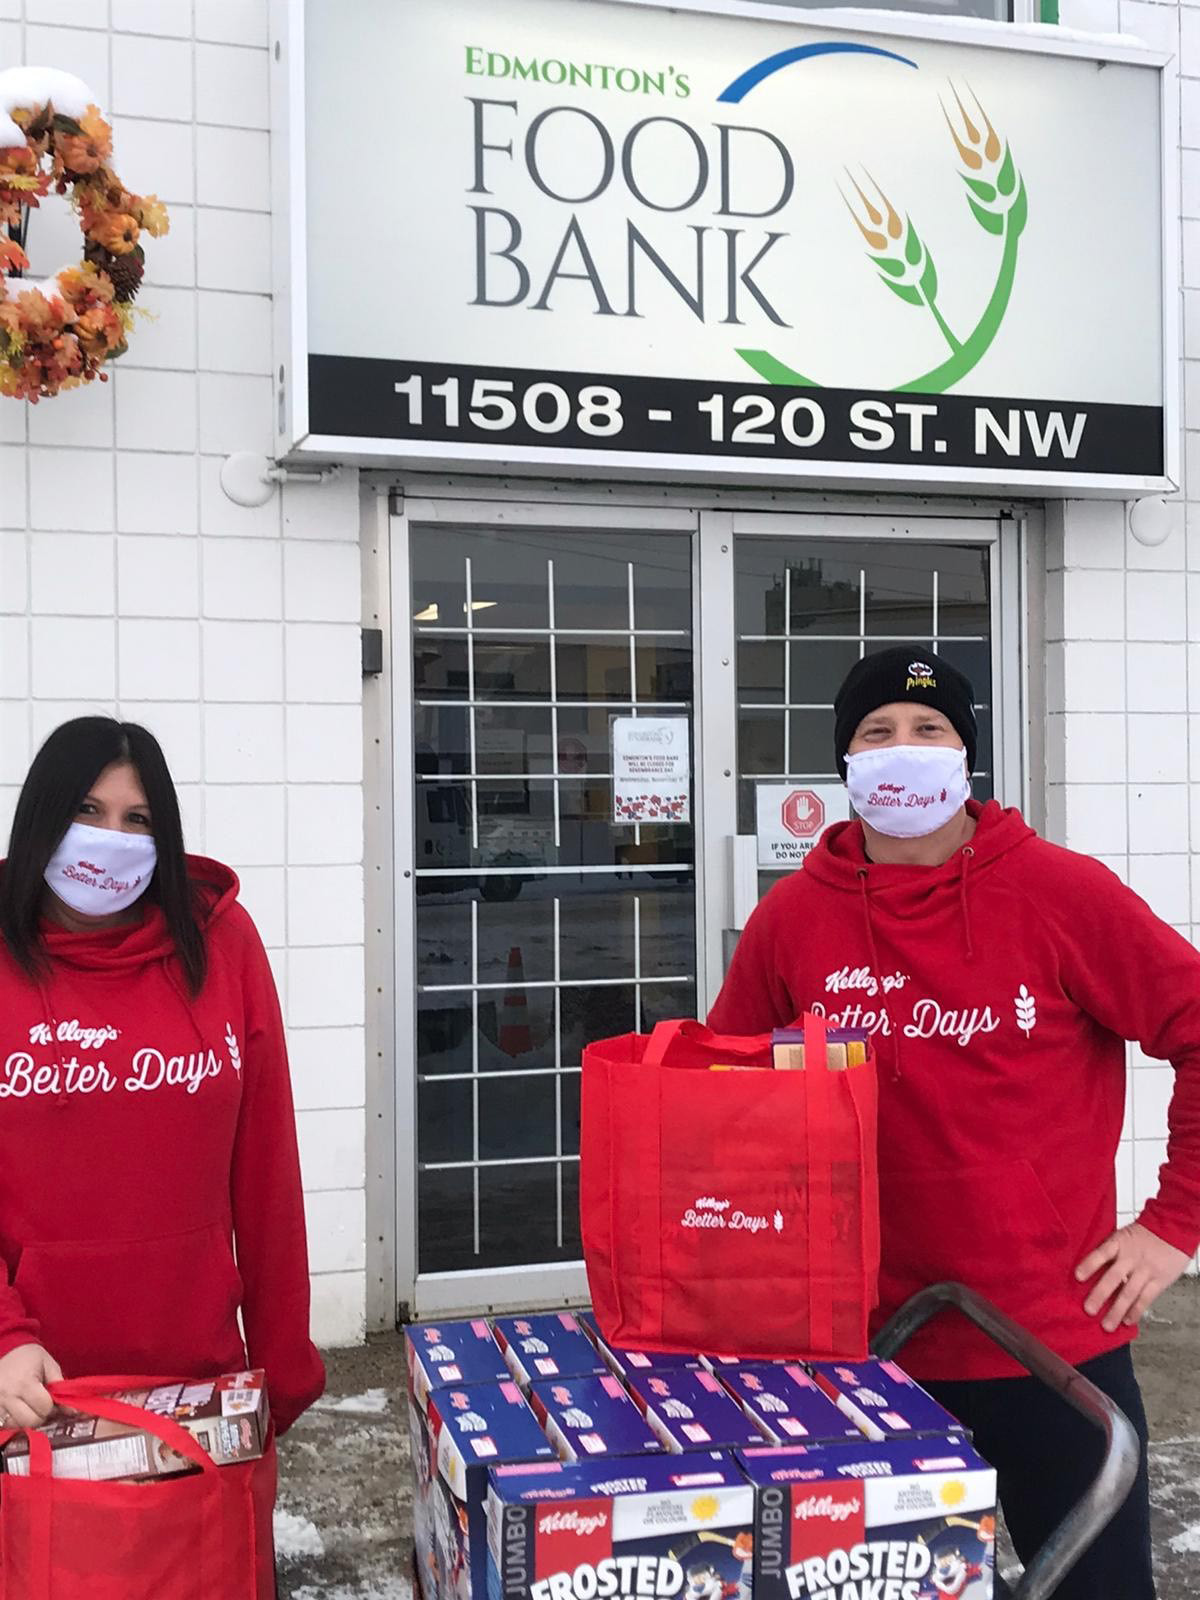 In Canada, the team rallied from coast to coast to create #KCIBetterDays by safely delivering hampers filled with cereal, masks and a note of encouragement to Canadians in need in their communities.